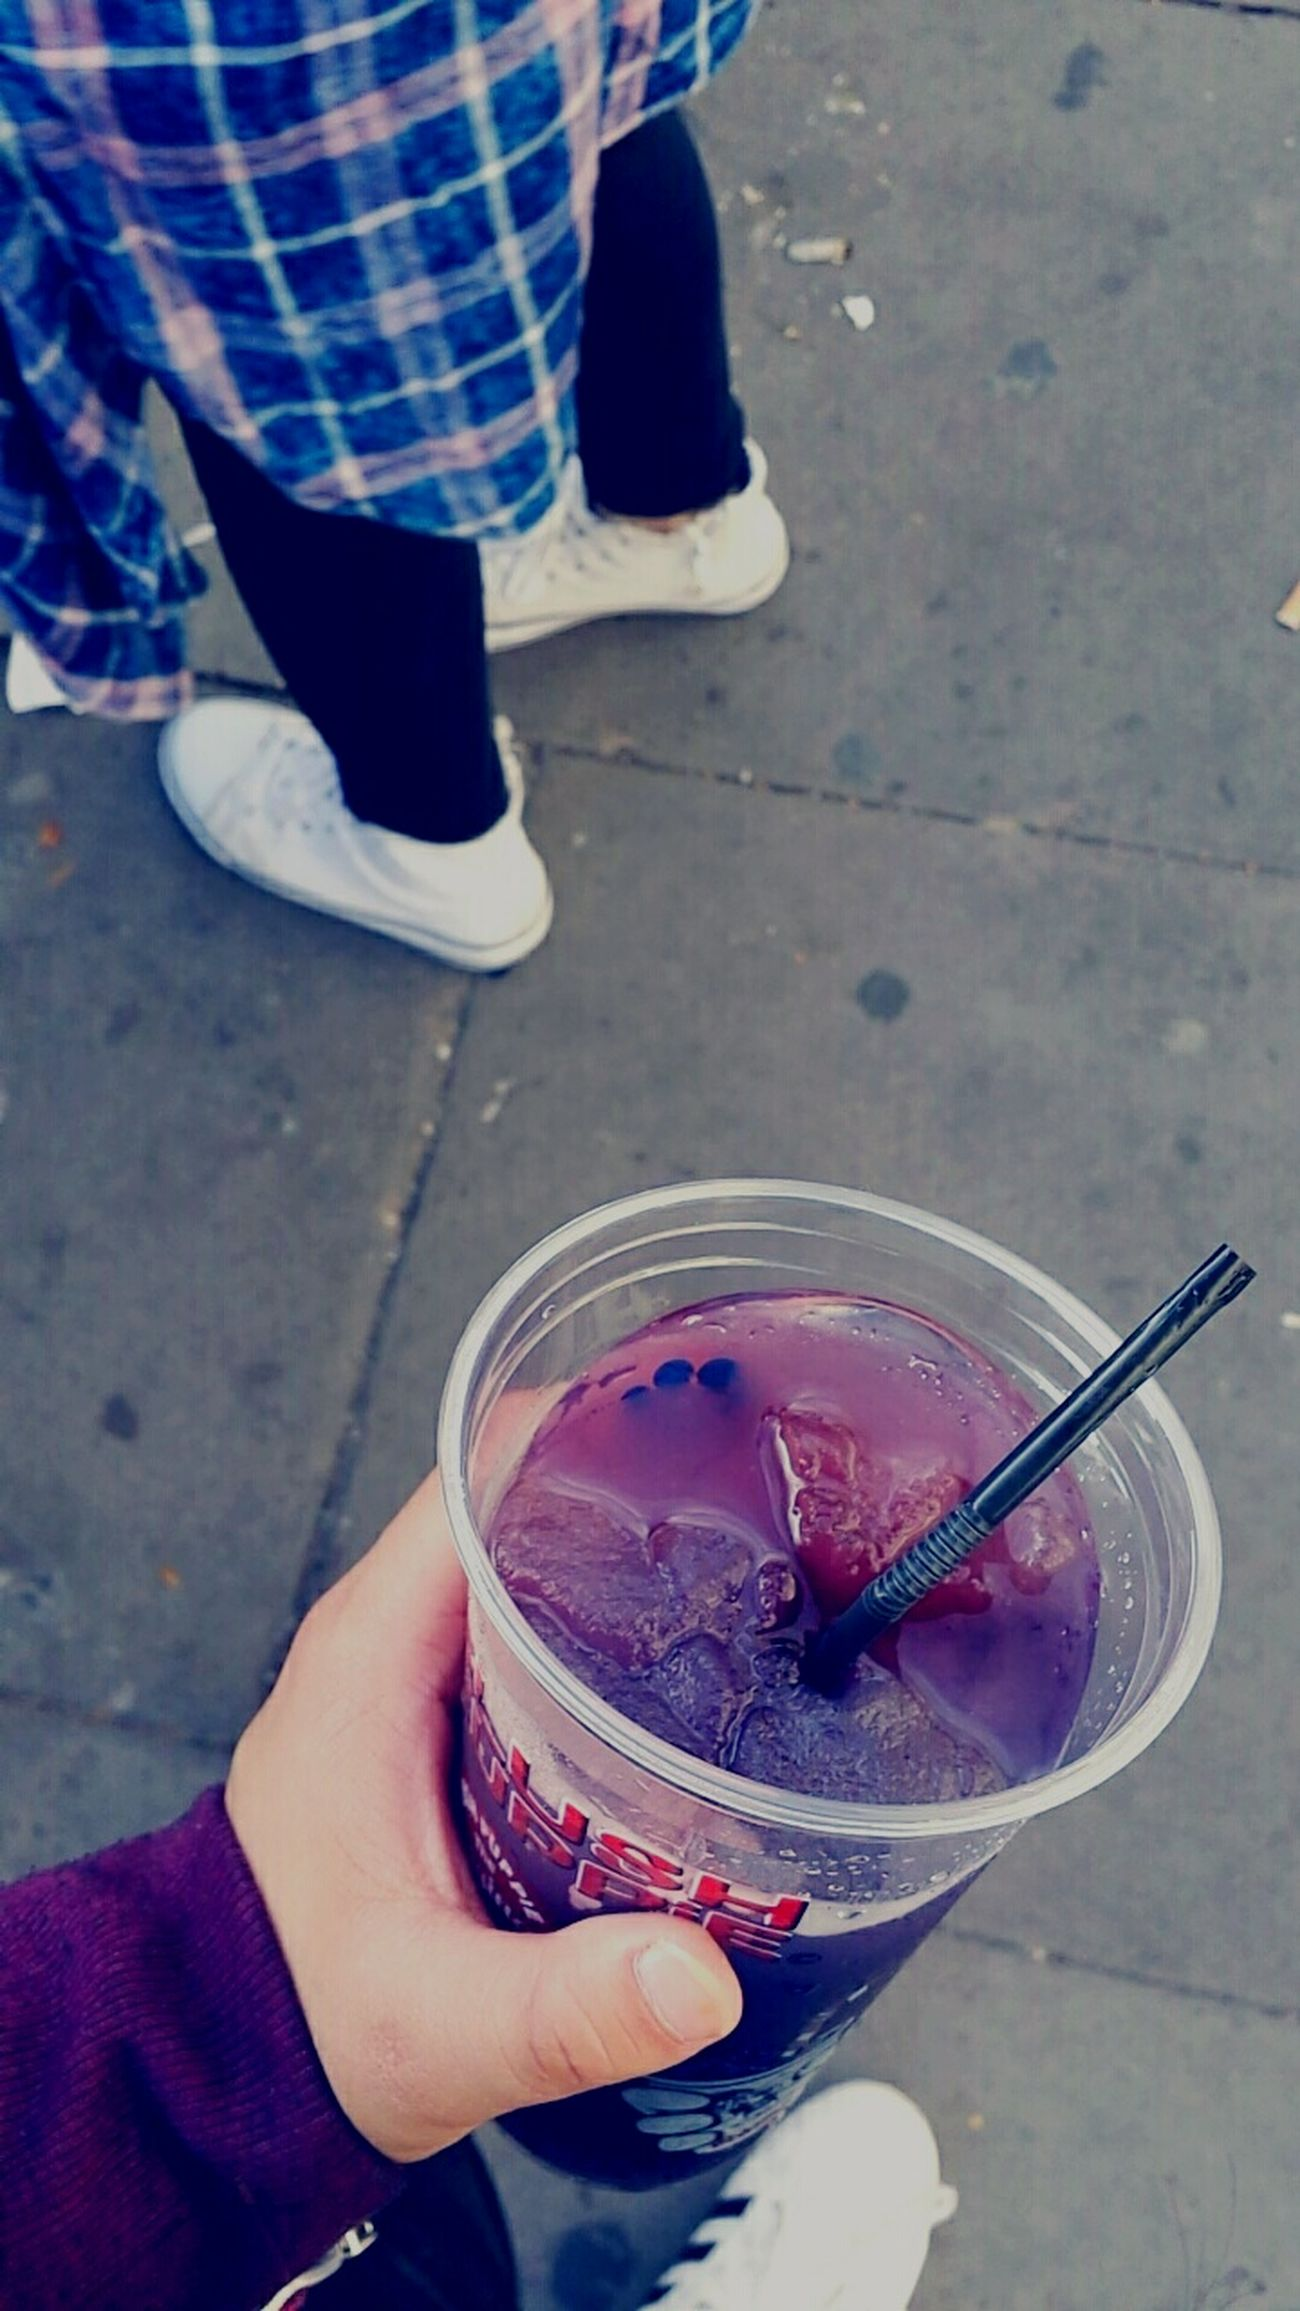 Galaxy Uk London LONDON❤ Slushie Galaxy Blue Pink Purple Converse Fannel White Black Adidas Adidassupertar Love Cup Straw Black